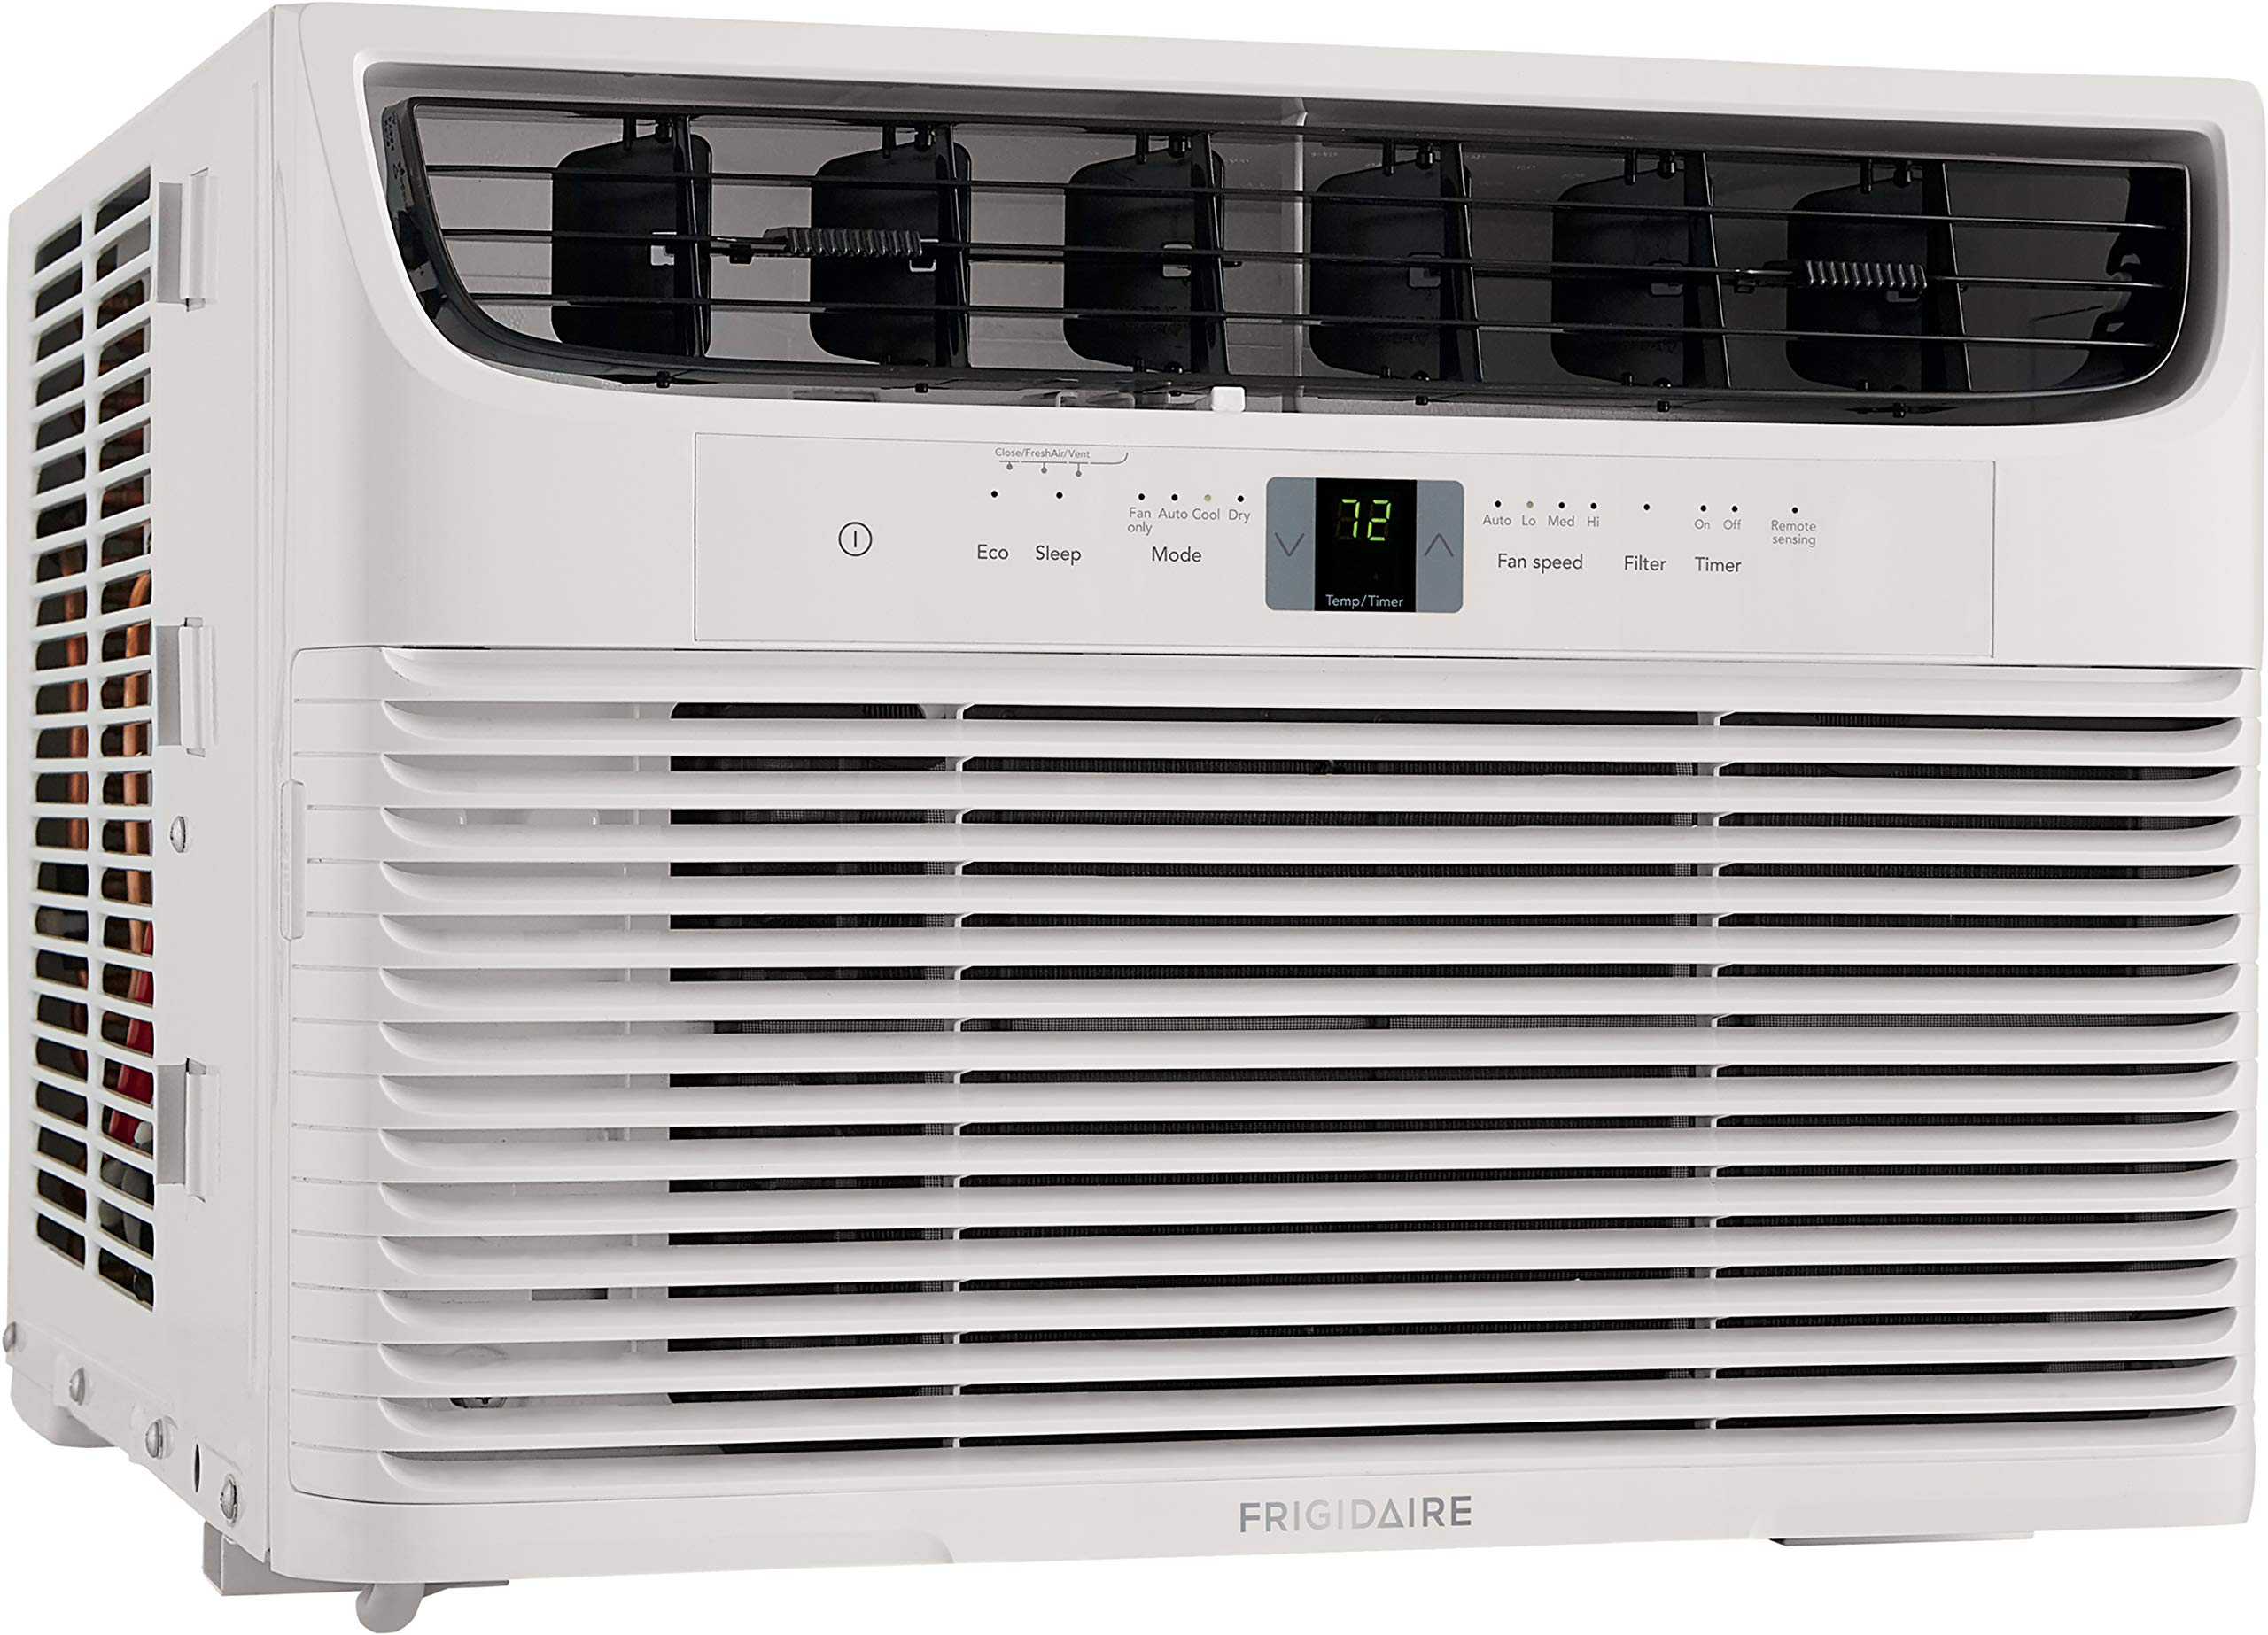 FRIGIDAIRE Window Mounted Compact Conditioner Control